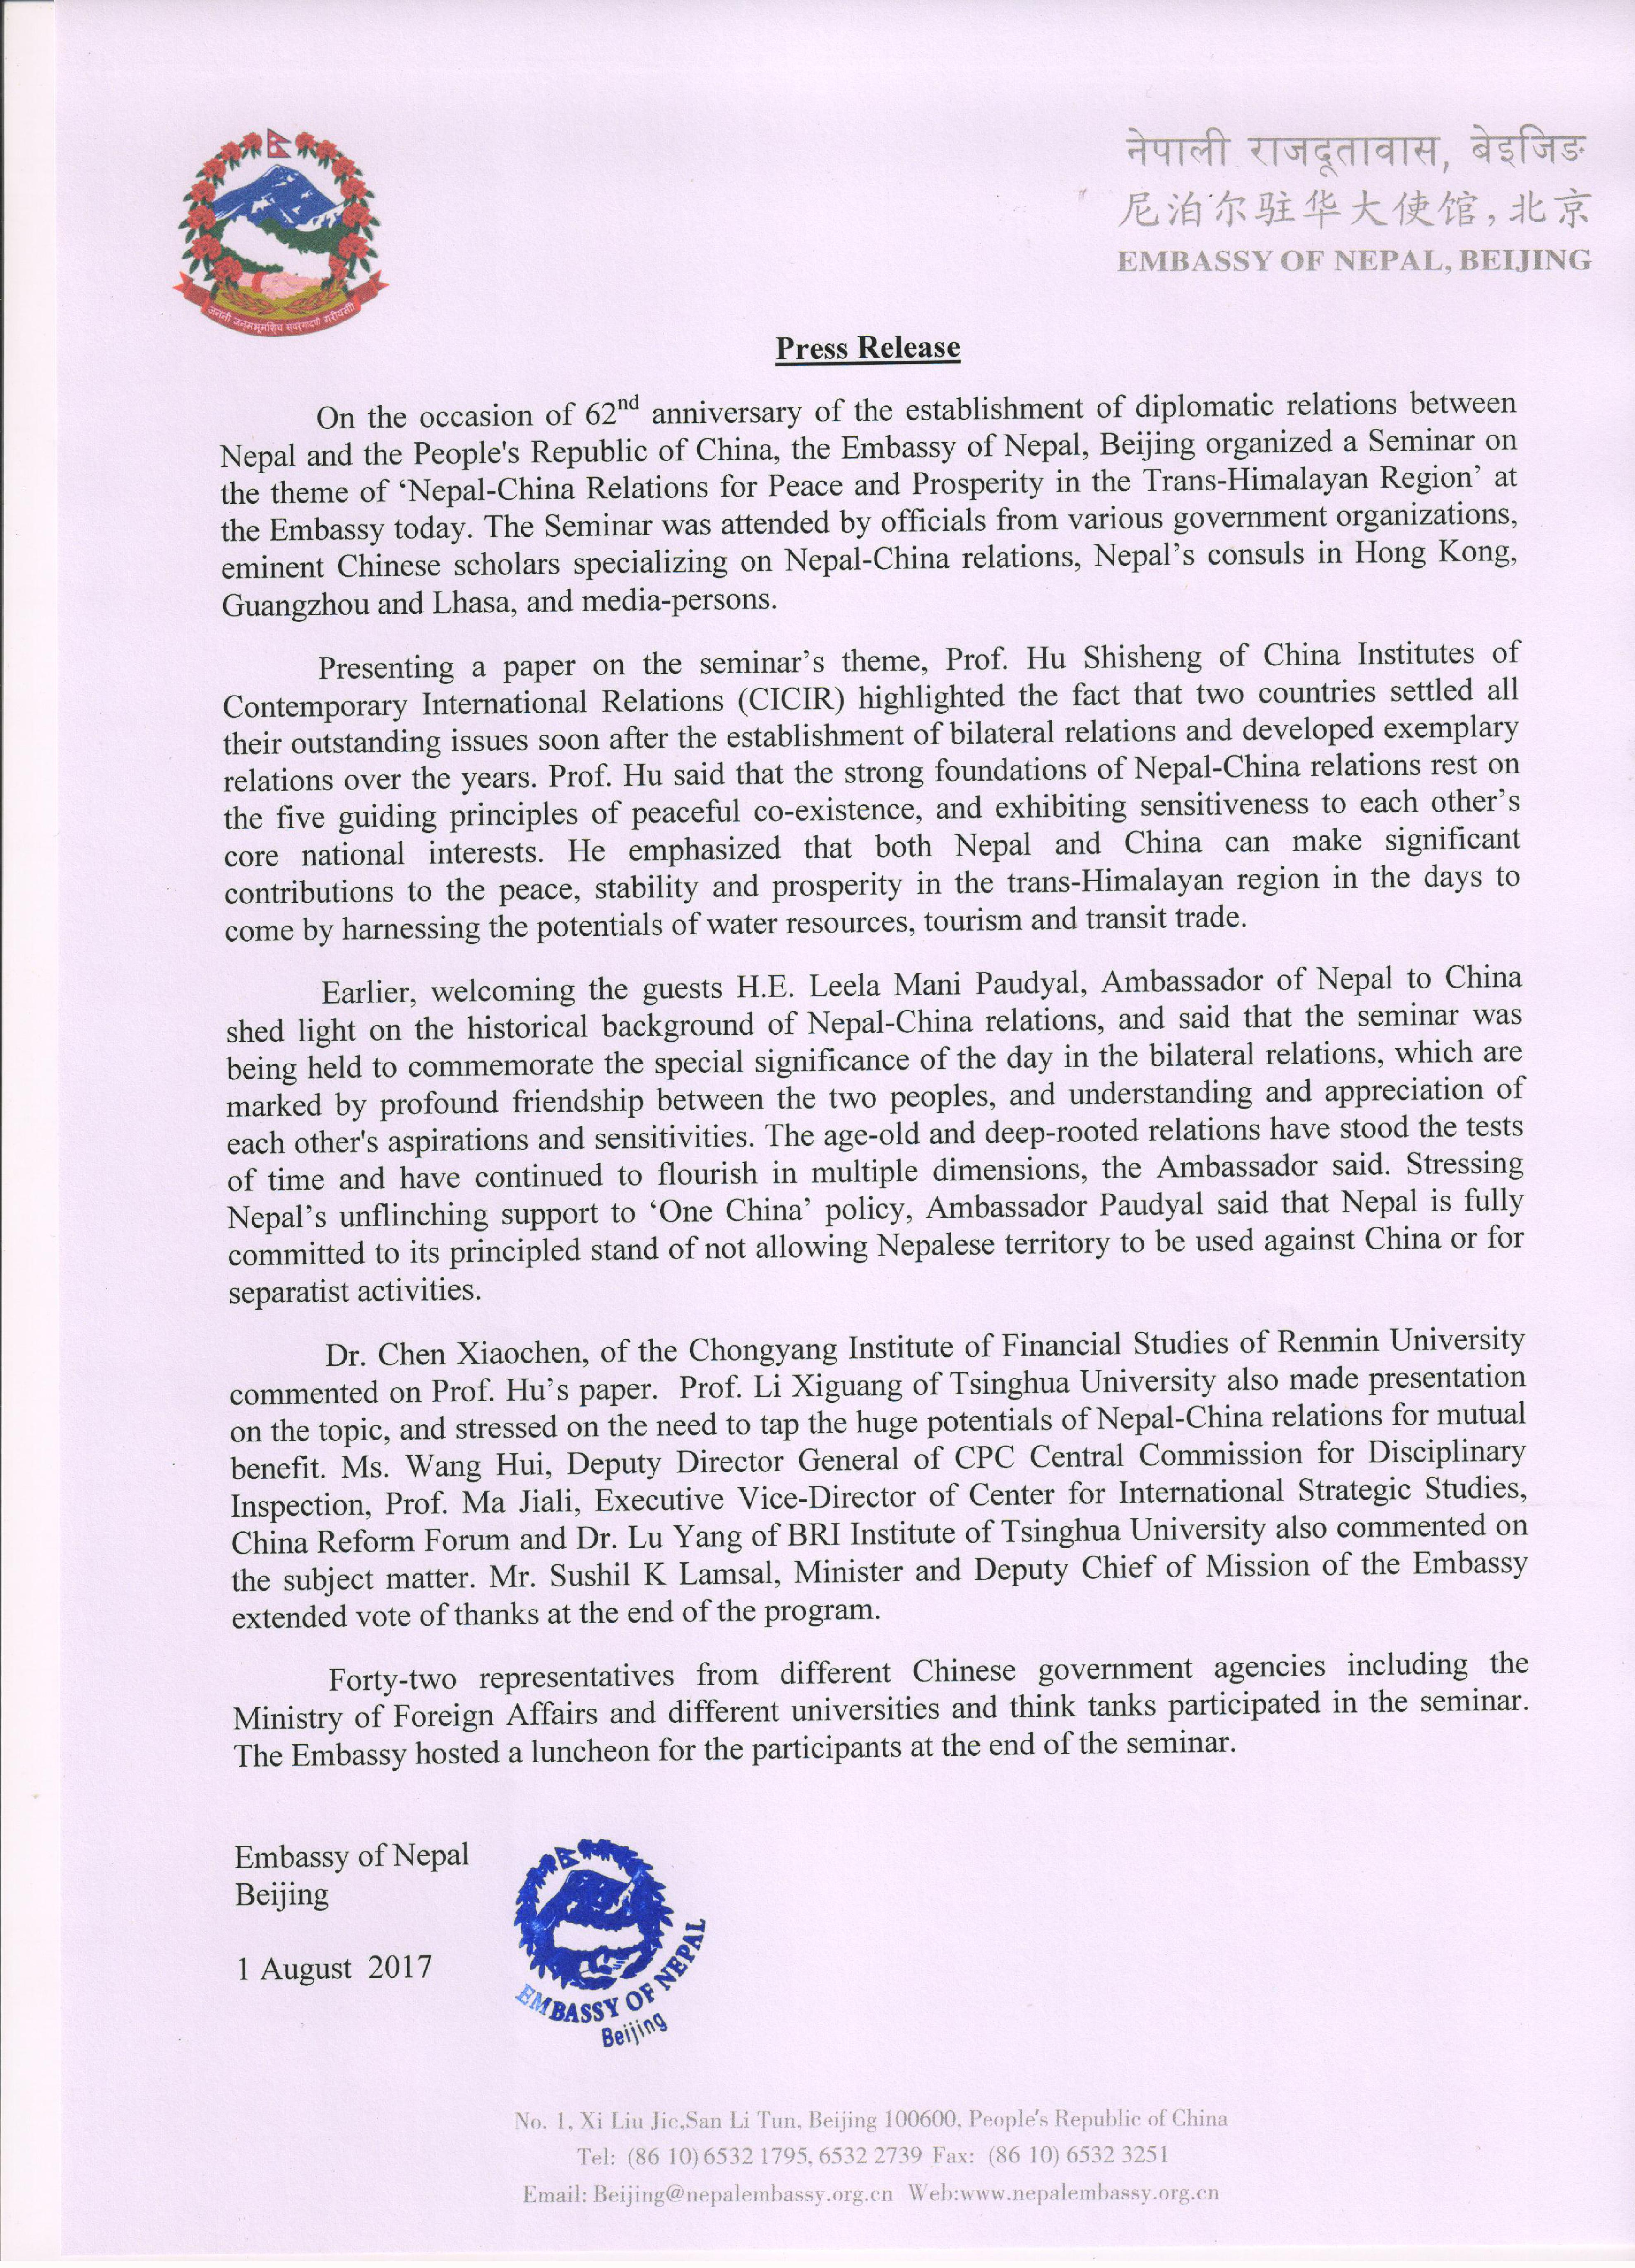 Press release on the seminar organized by the embassy of nepal press release on the seminar organized by the embassy of nepal beijing to mark 62nd diplomatic relations between nepal and china thecheapjerseys Gallery